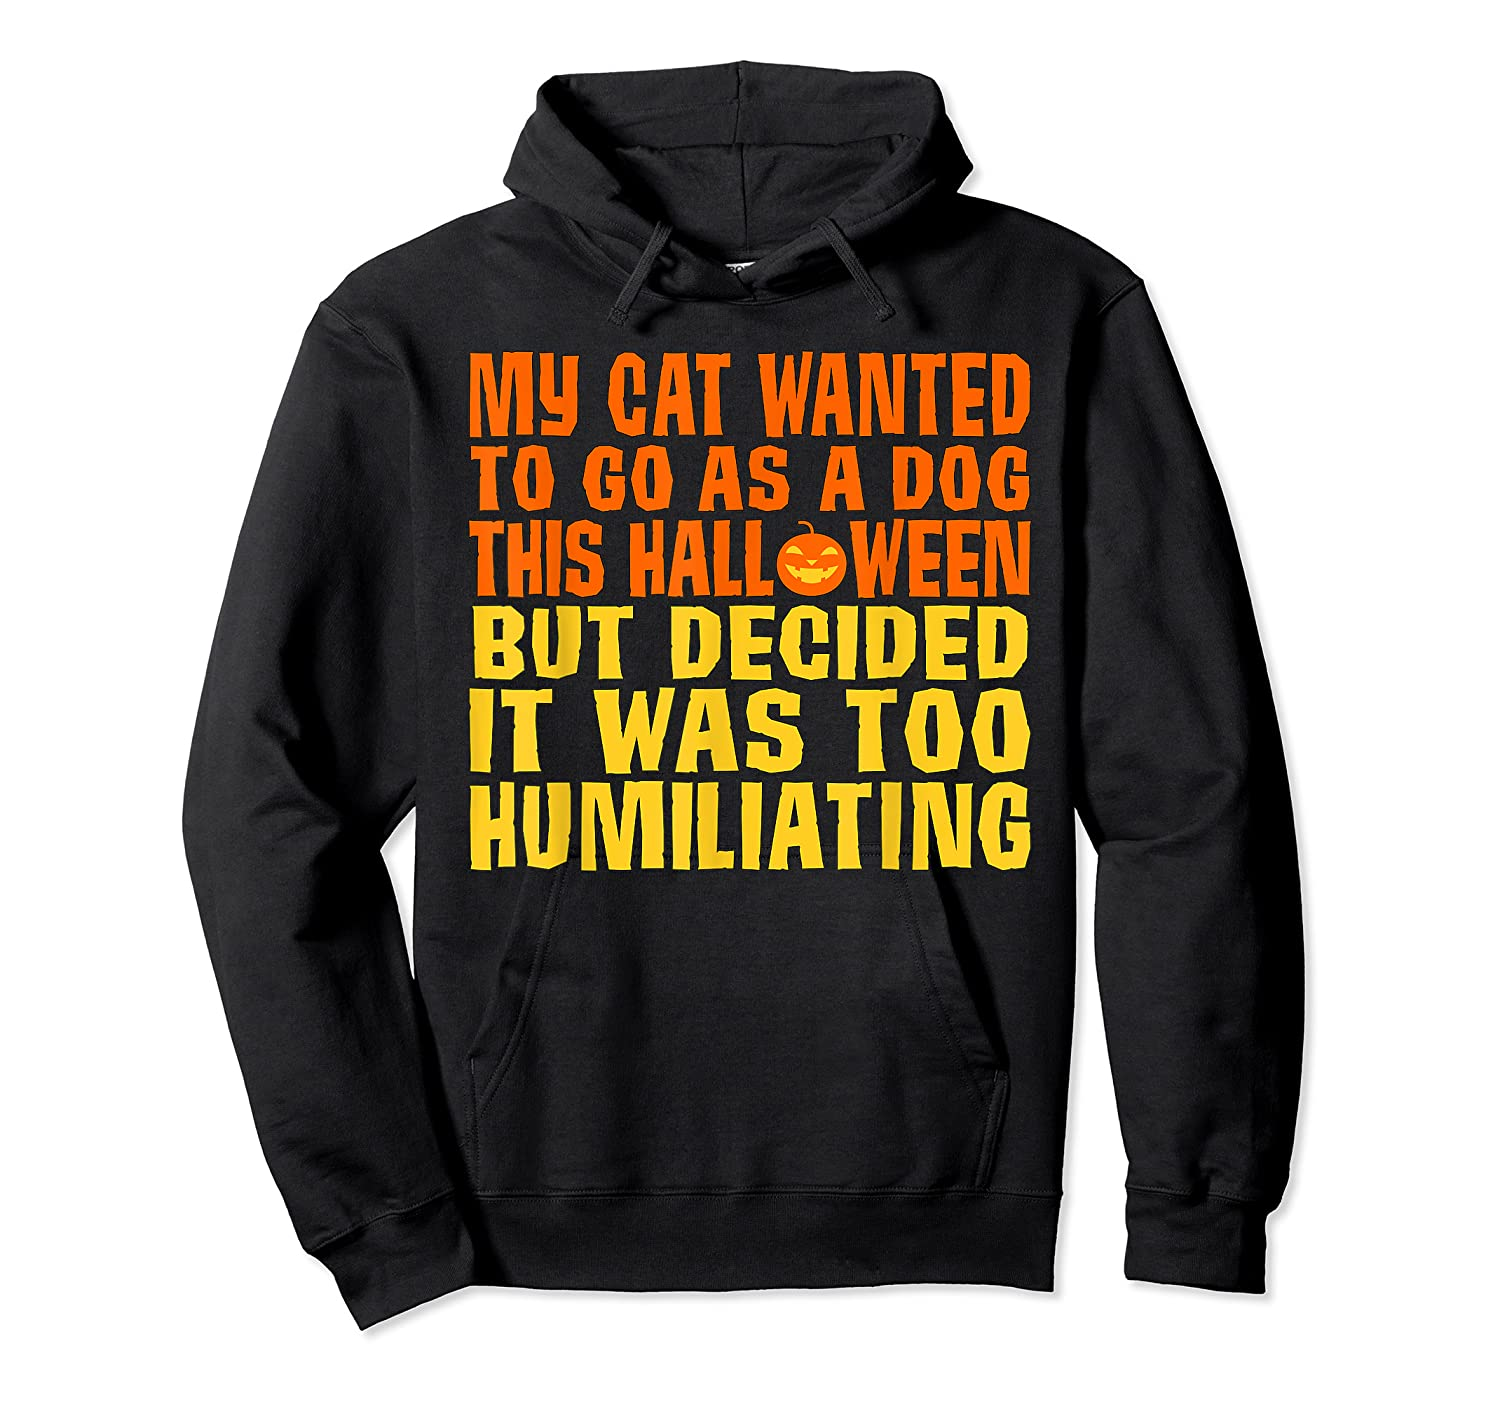 My Cat Wanted To Go As A Dog This Halloween Cute Funny Gift Shirts Unisex Pullover Hoodie